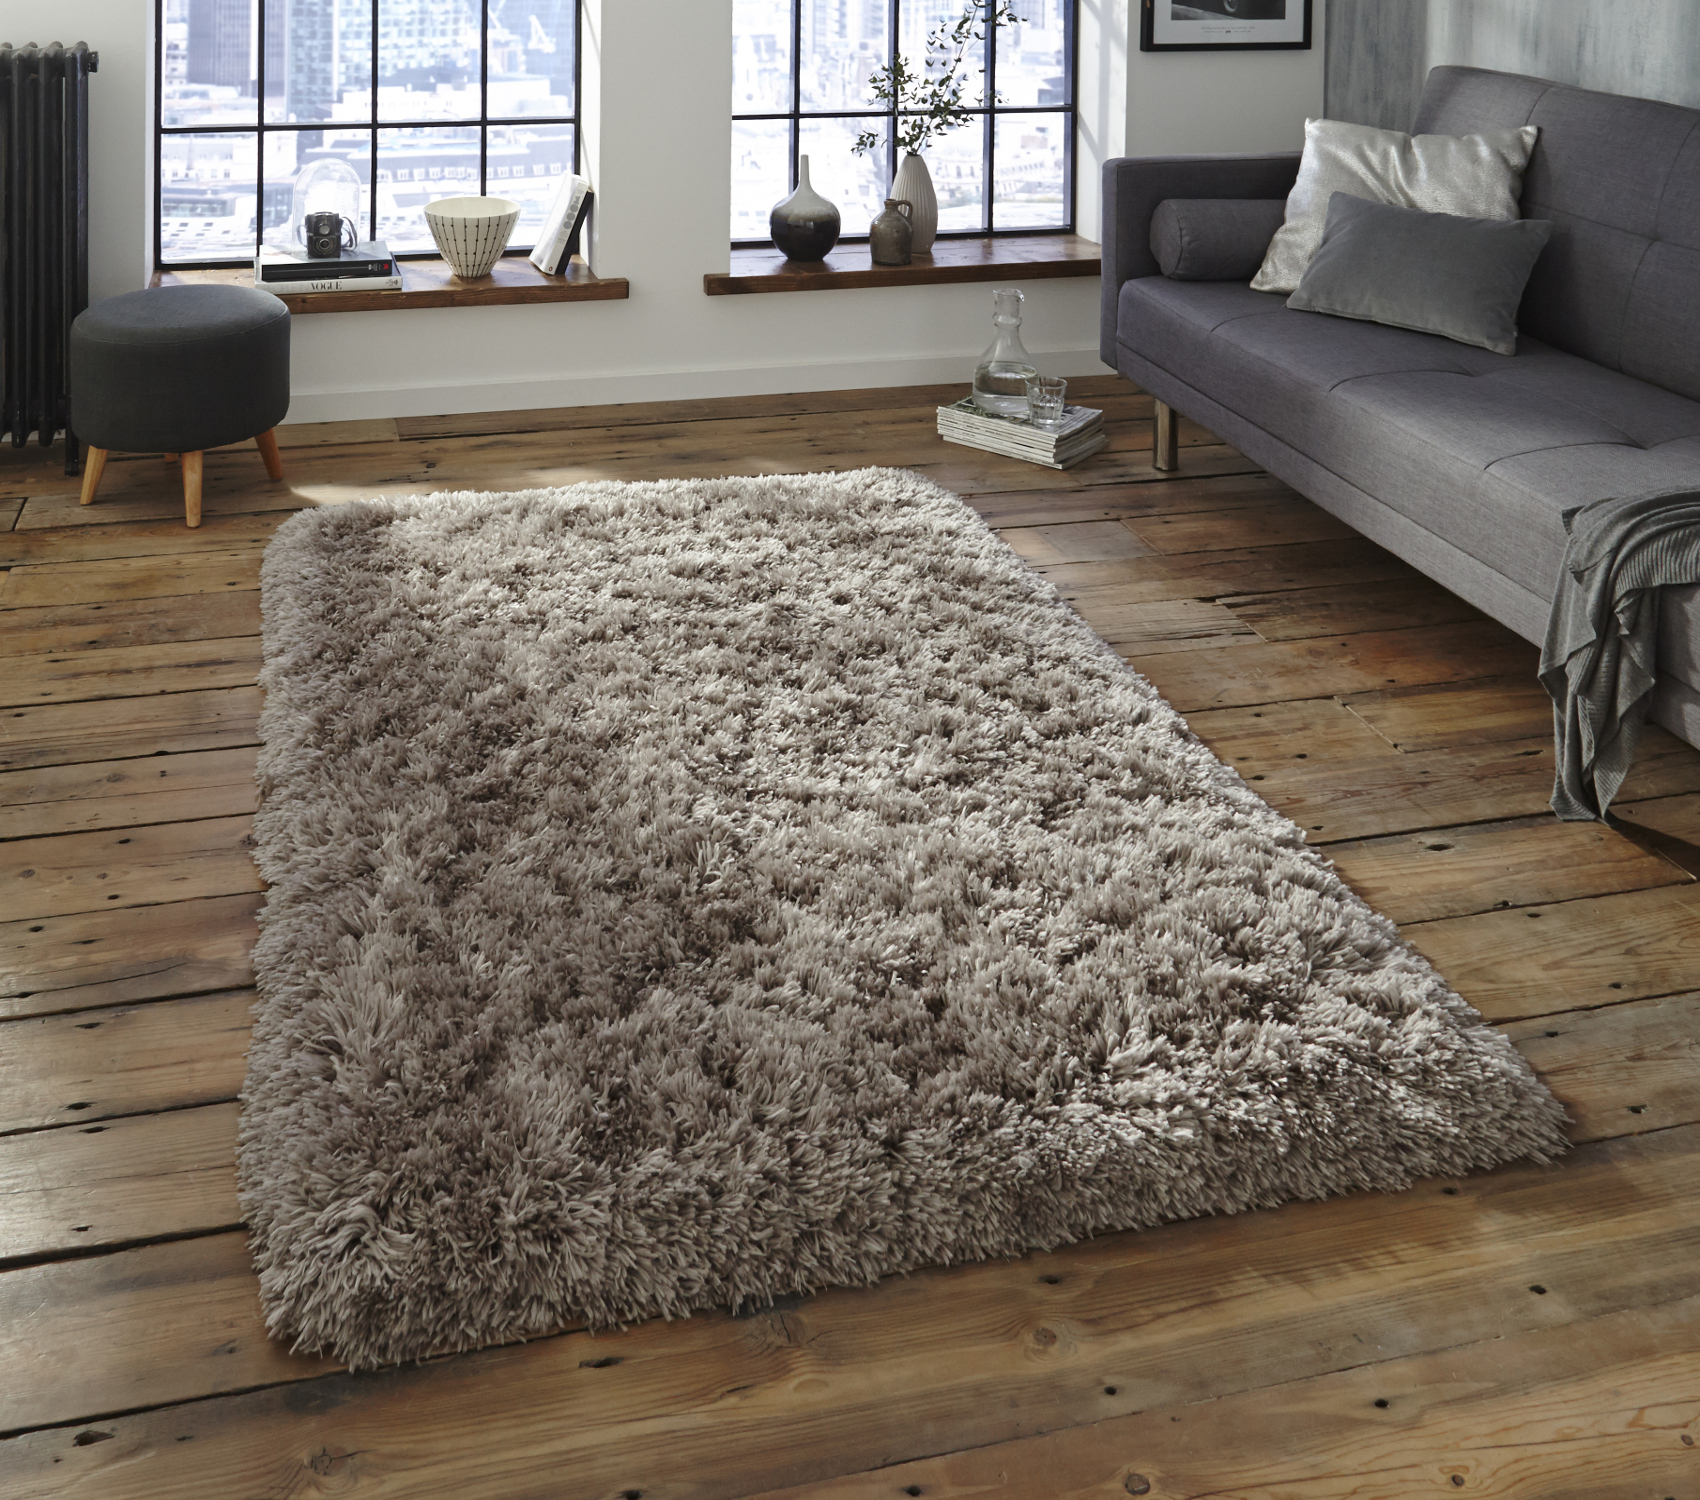 Ikea Rugs Sale Uk: Grey Thick Shaggy 8.5cm Pile Rug Luxurious Hand Tufted 100